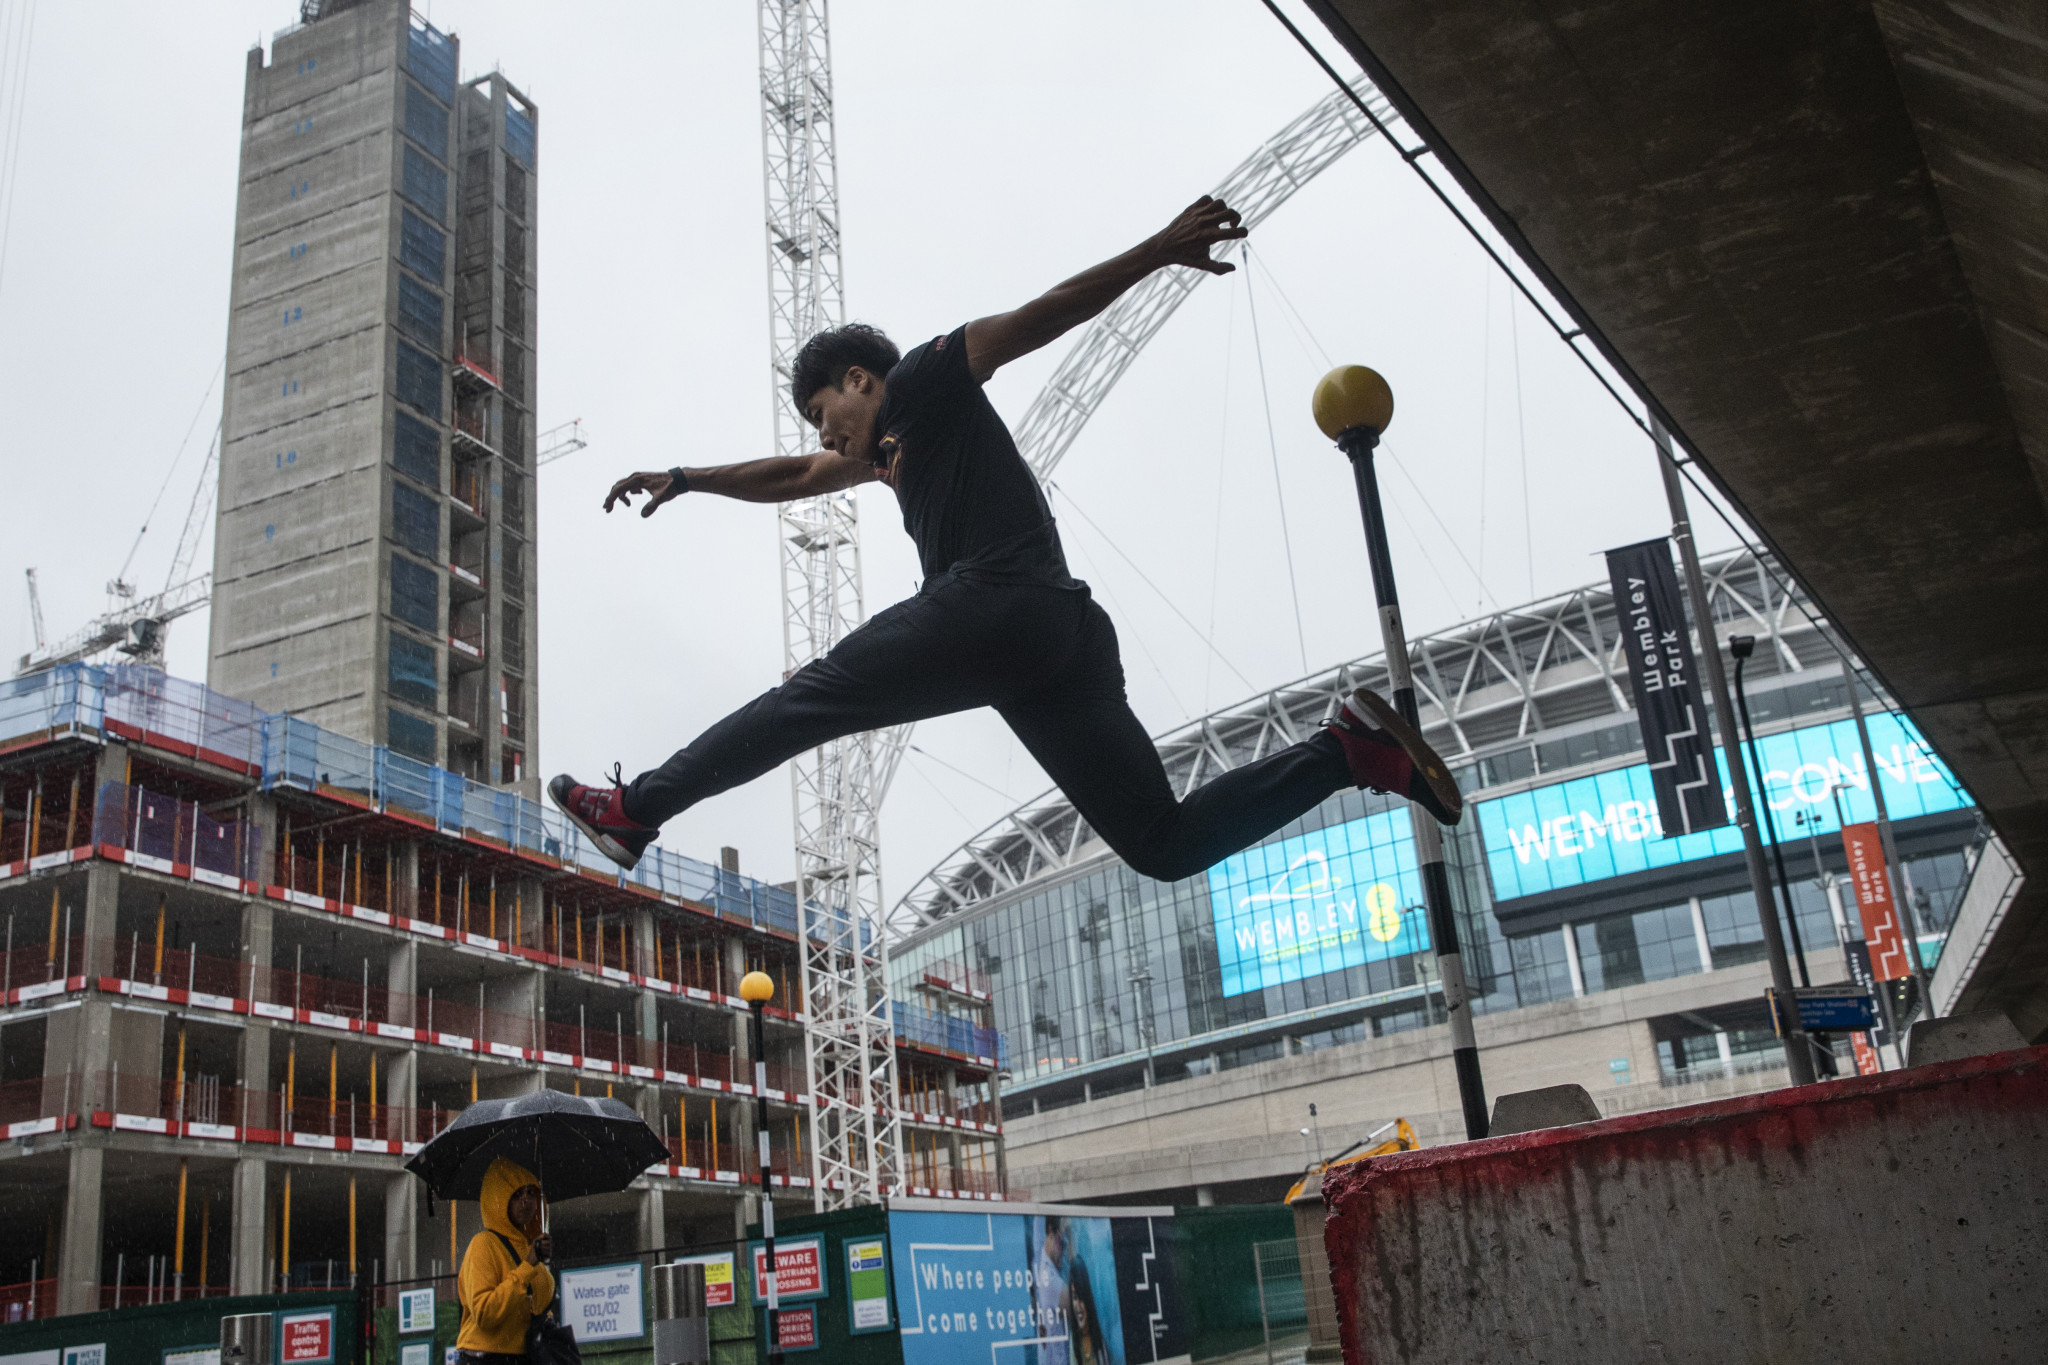 The FIG's venture into parkour has hit a major stumbling block ©Getty Images